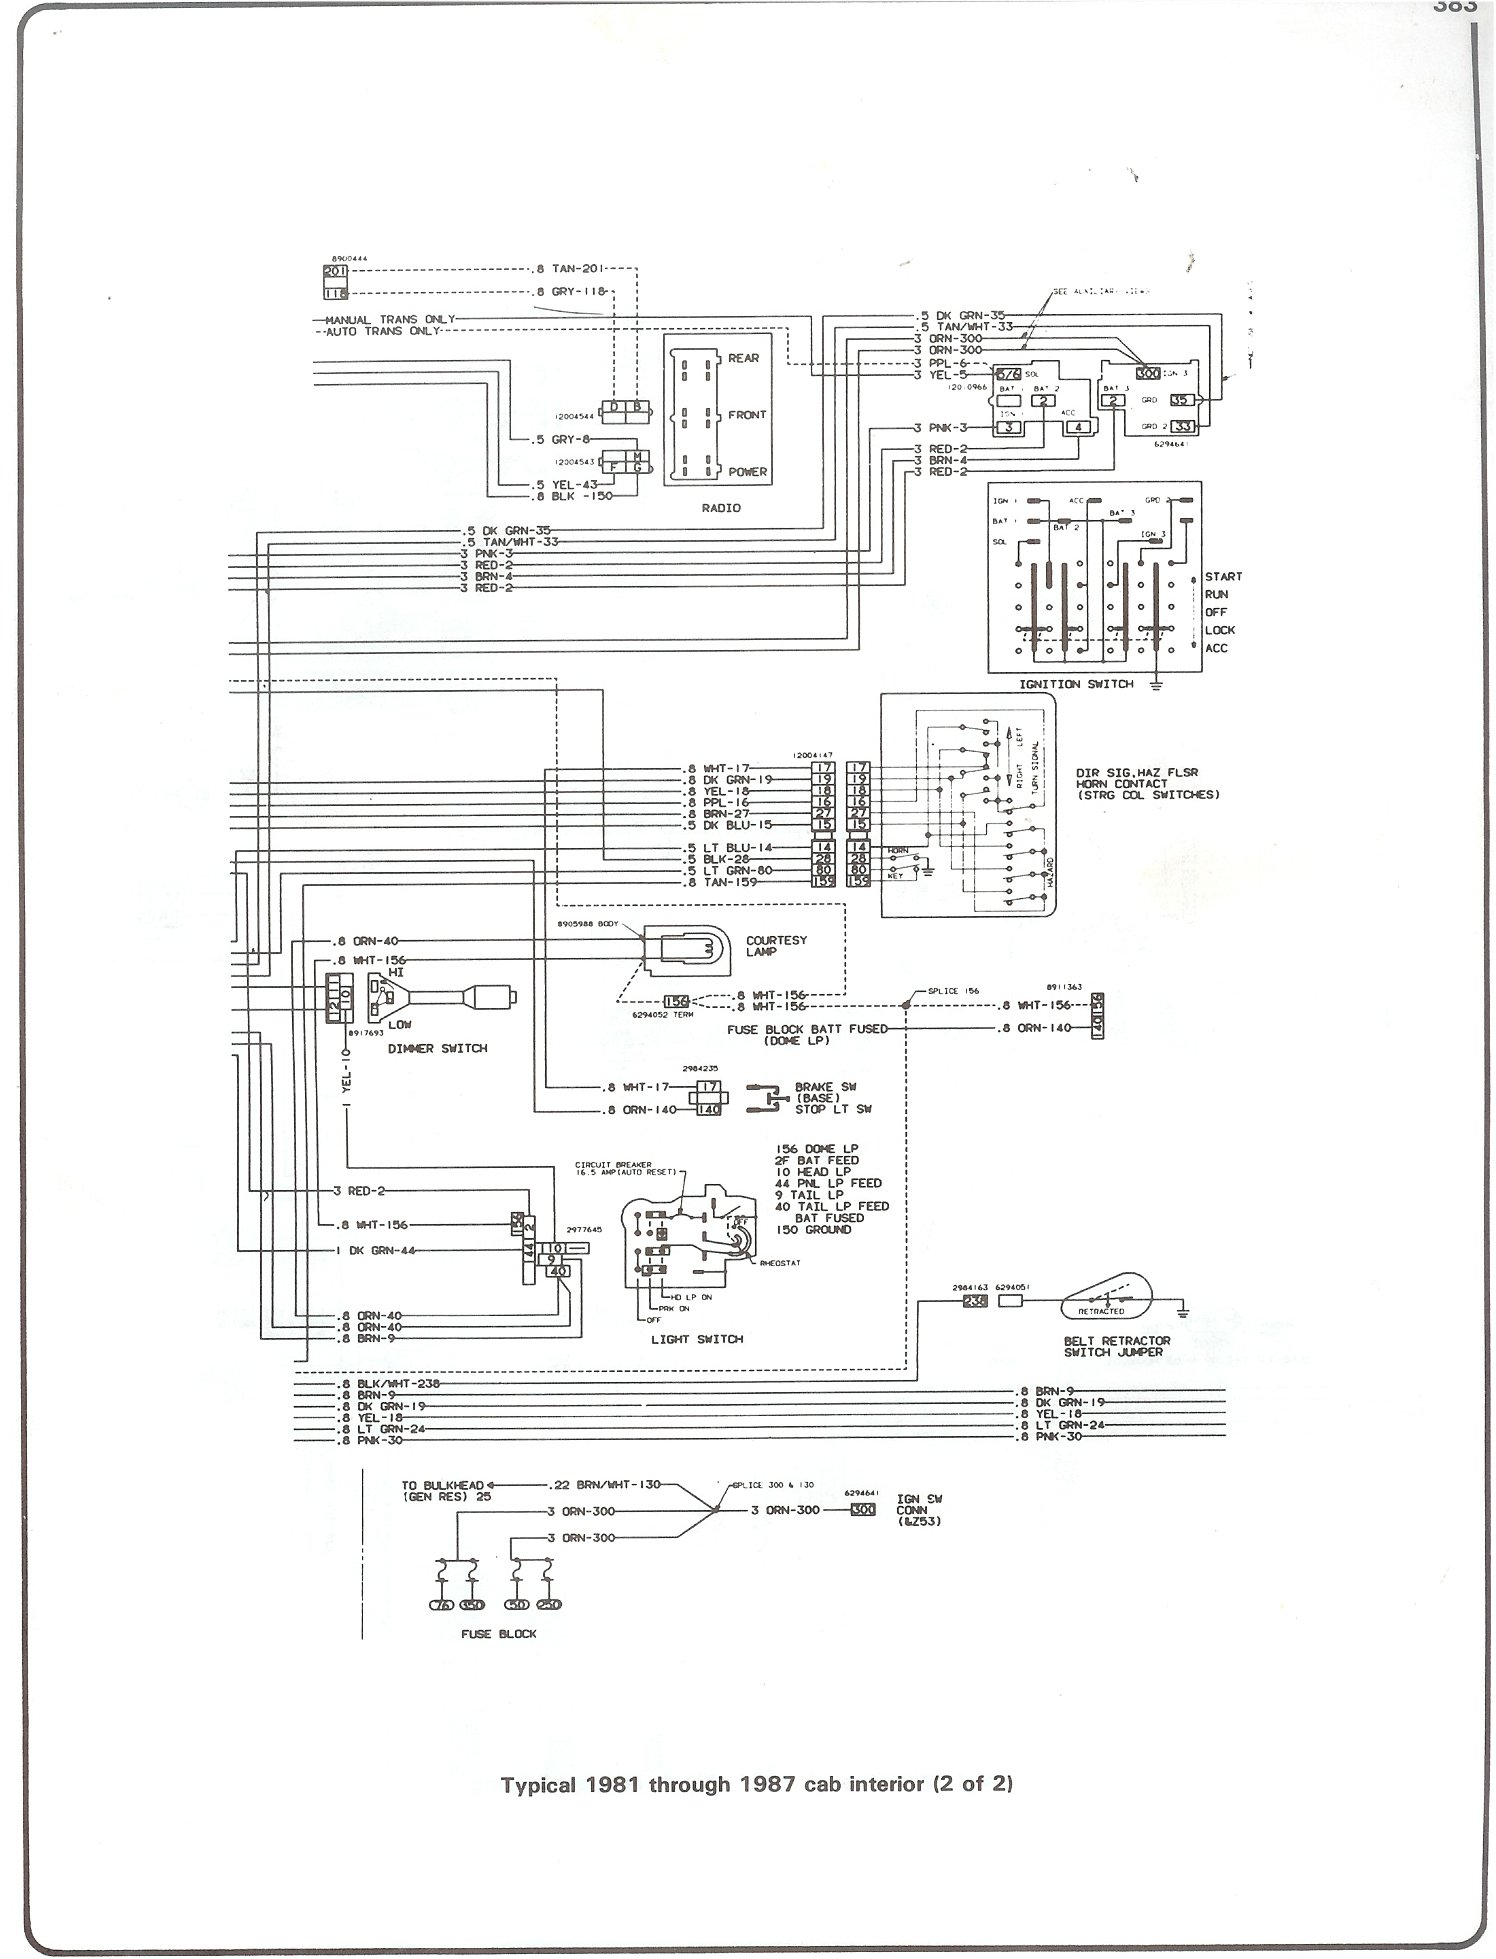 Complete 73-87 Wiring Diagrams | 1981 Chevy C30 Wiring Diagram |  | 73-87 Chevy Truck Forums